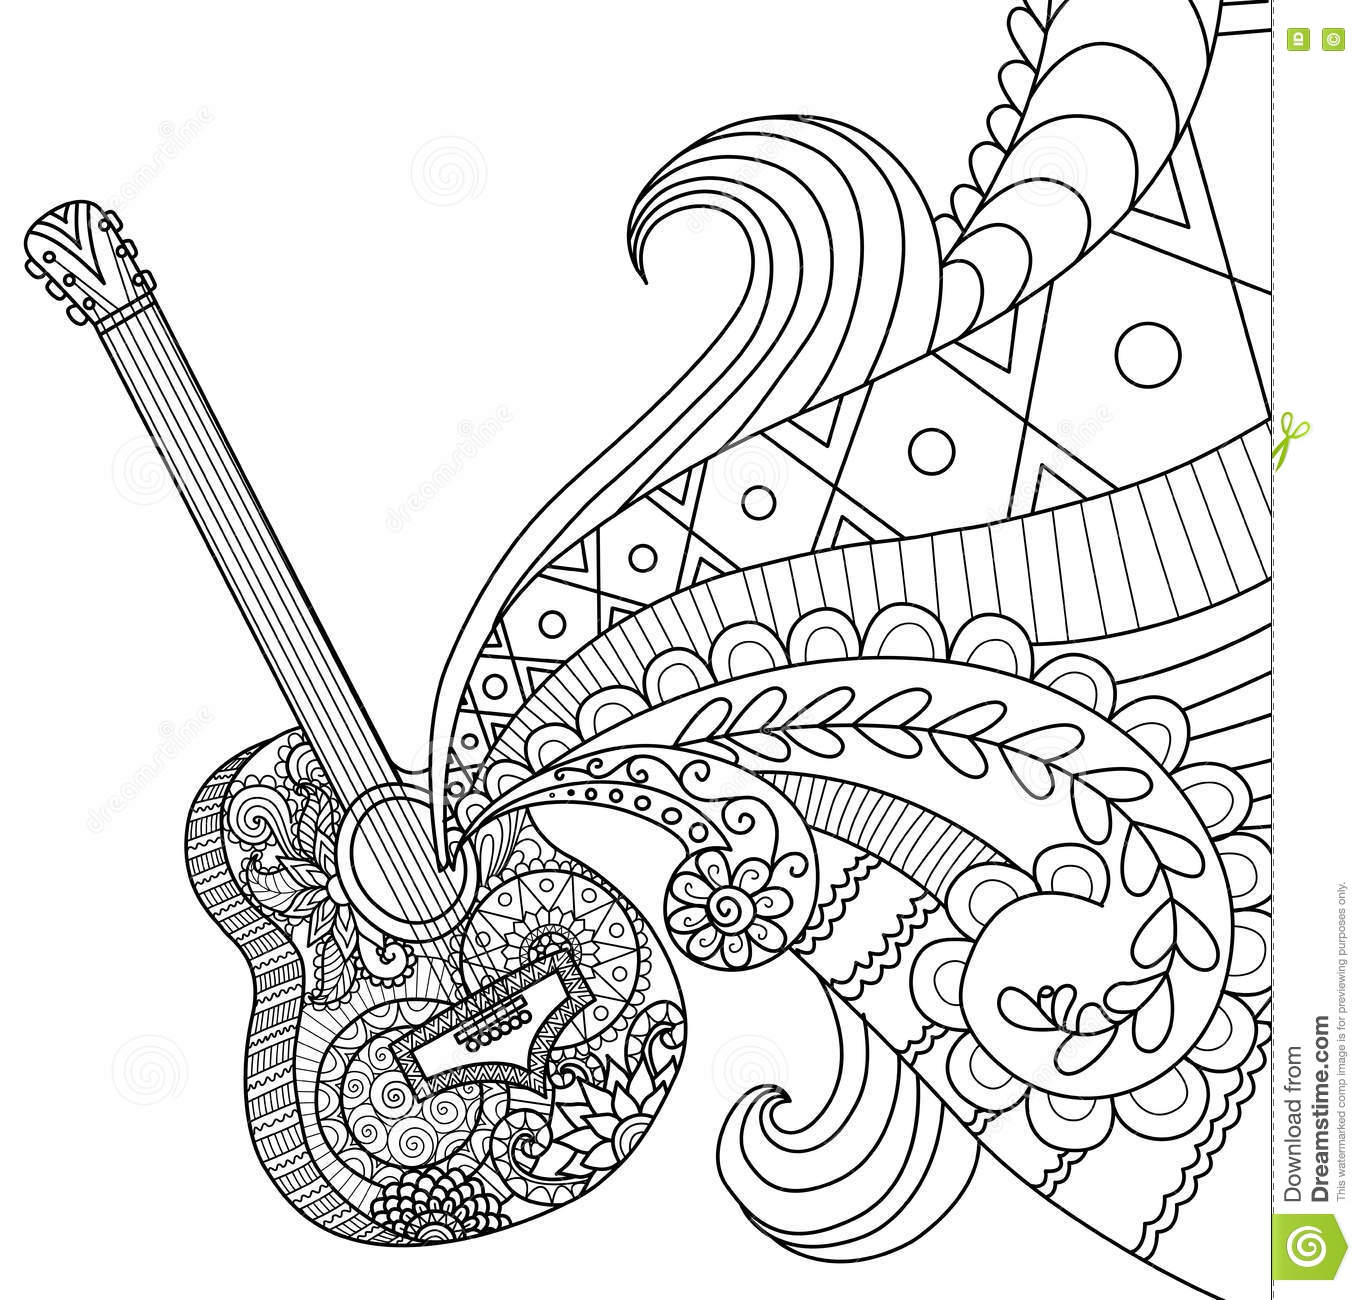 Guitar Coloring Page At Getcolorings